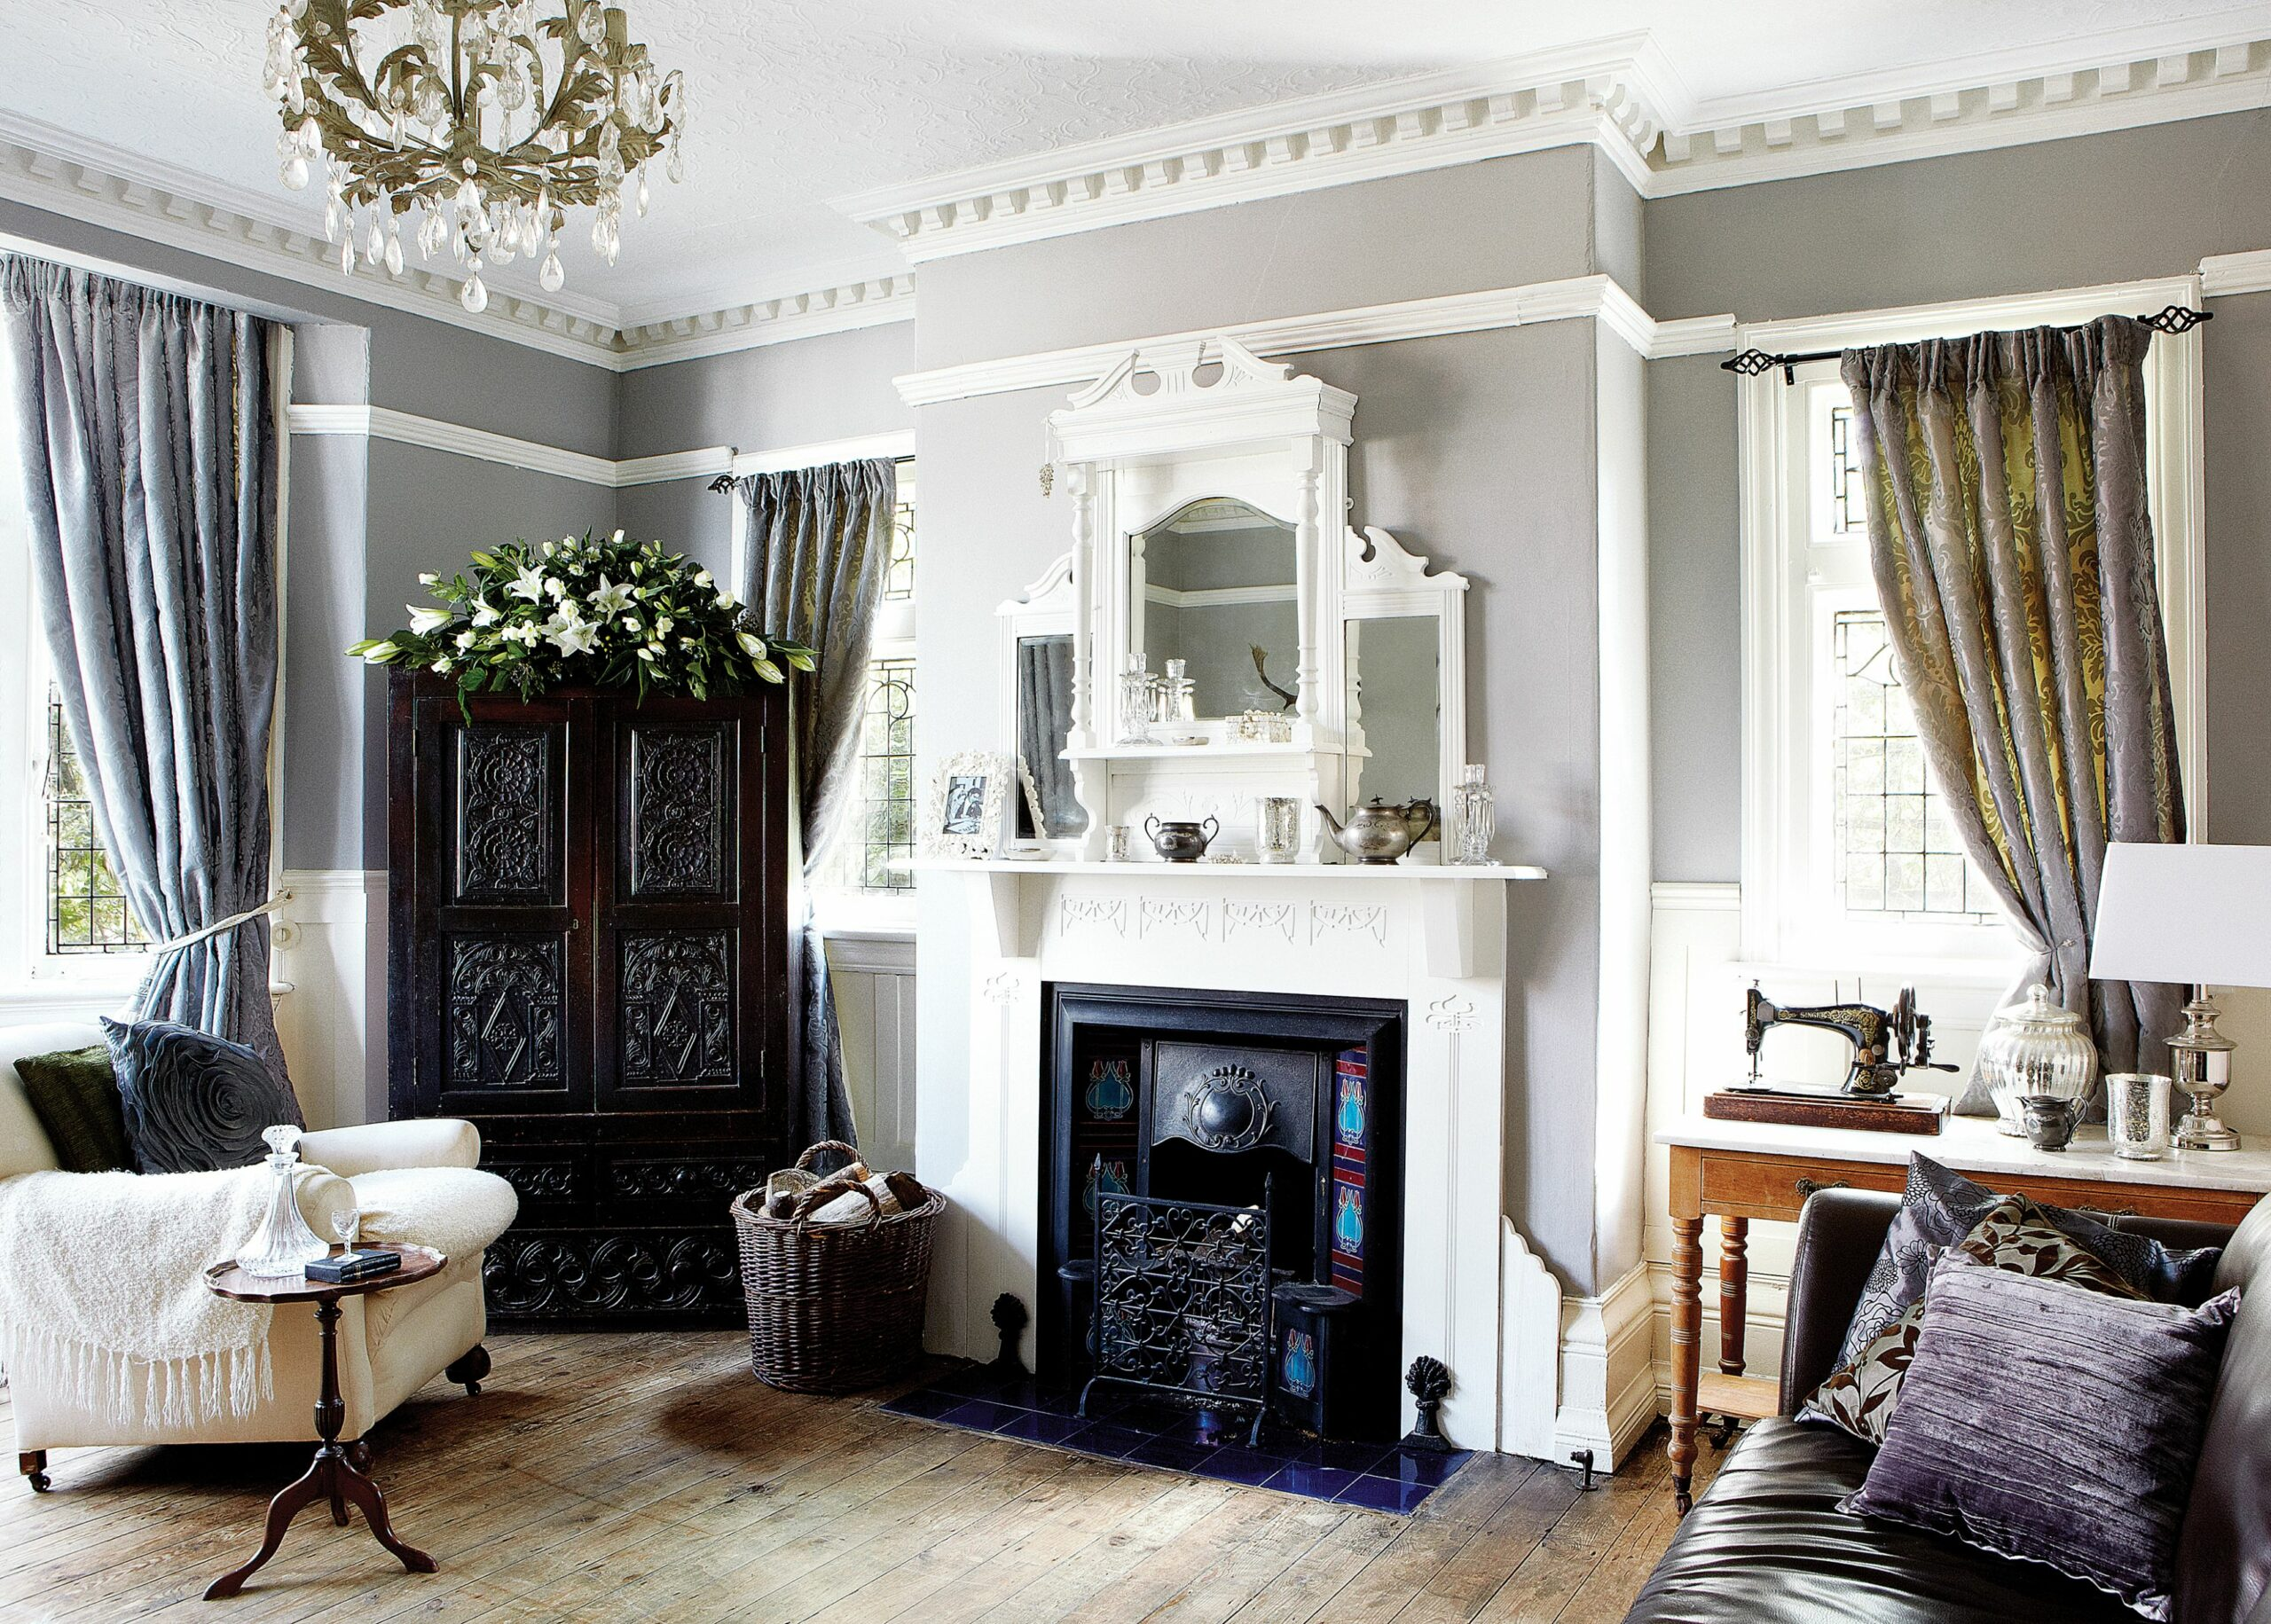 Real home: restoring a 9s house - edwardian house inspiration